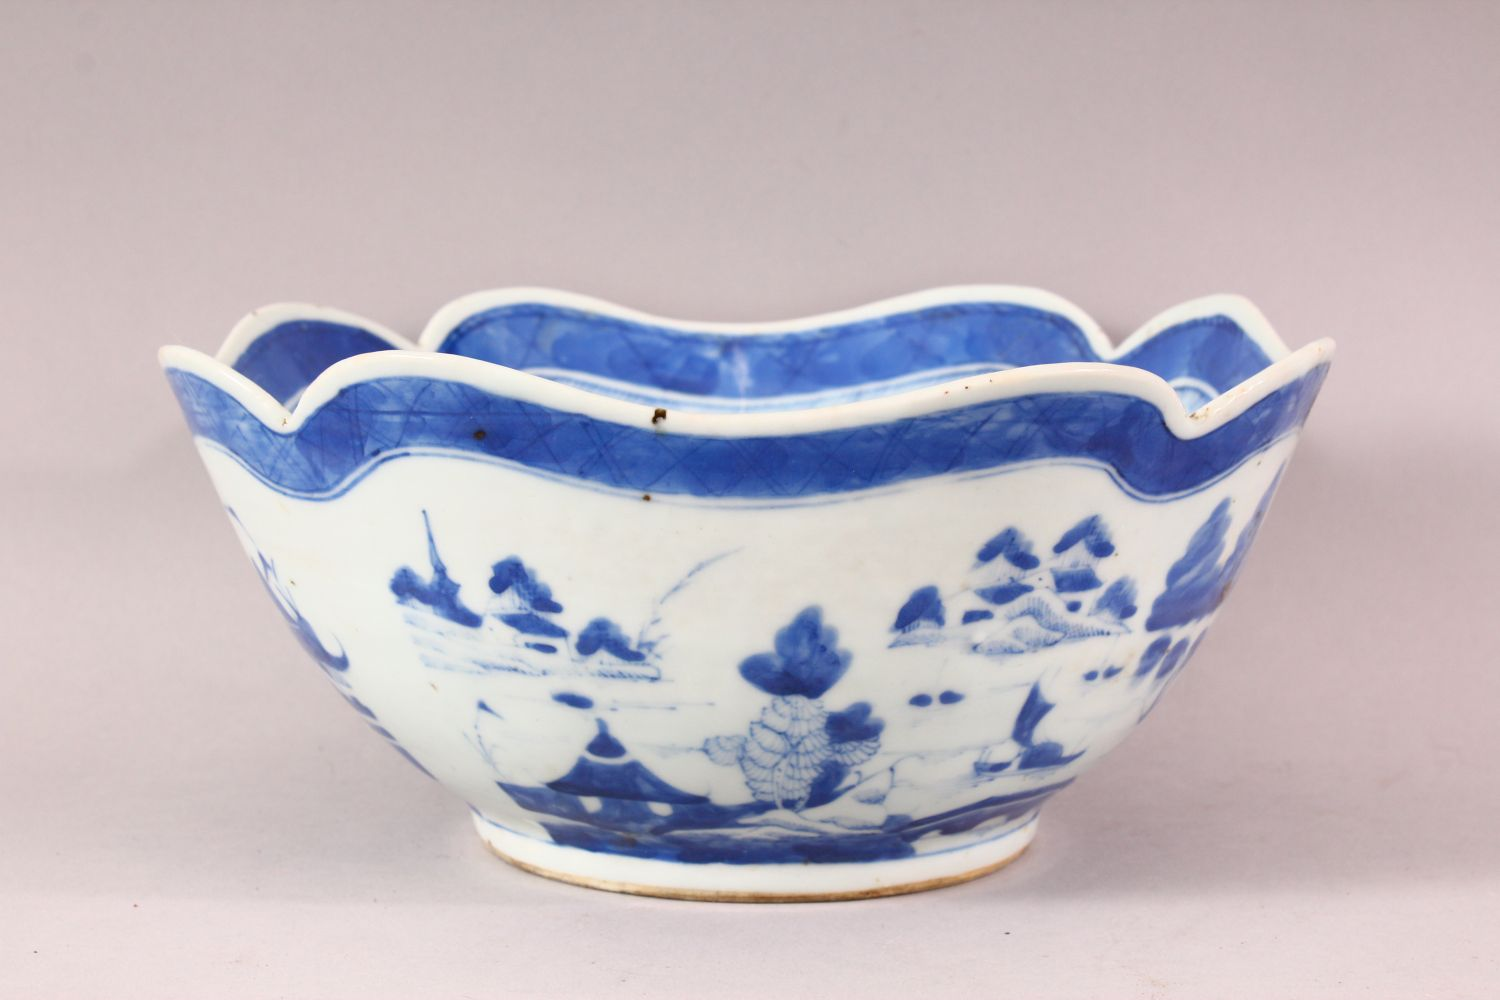 AN 18TH / 19TH CENTURY CHINESE BLUE & WHITE PORCELAIN BOWL, of quatrefoil form, decorated with - Image 3 of 6